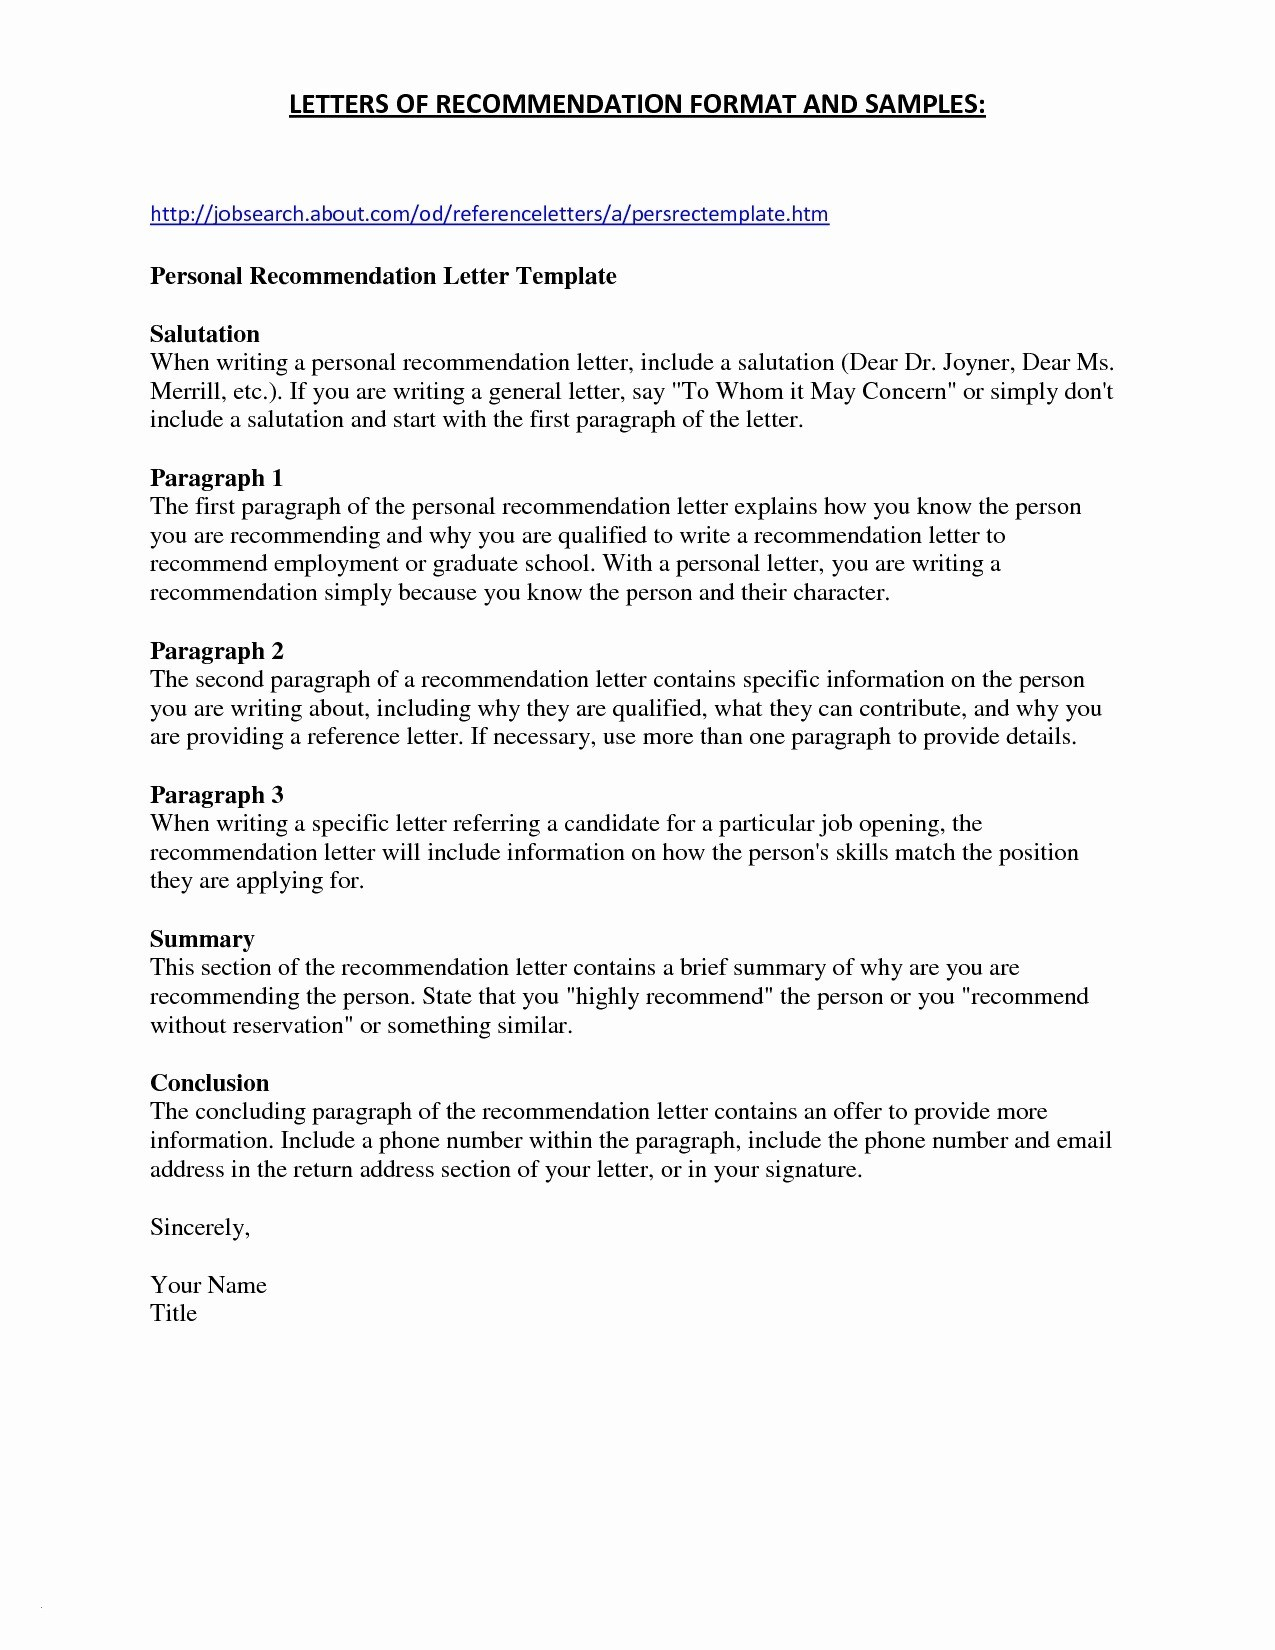 Microsoft Word Letter Of Recommendation Template - Job Re Mendation Letter Best Bination Resume formats Unique Resume